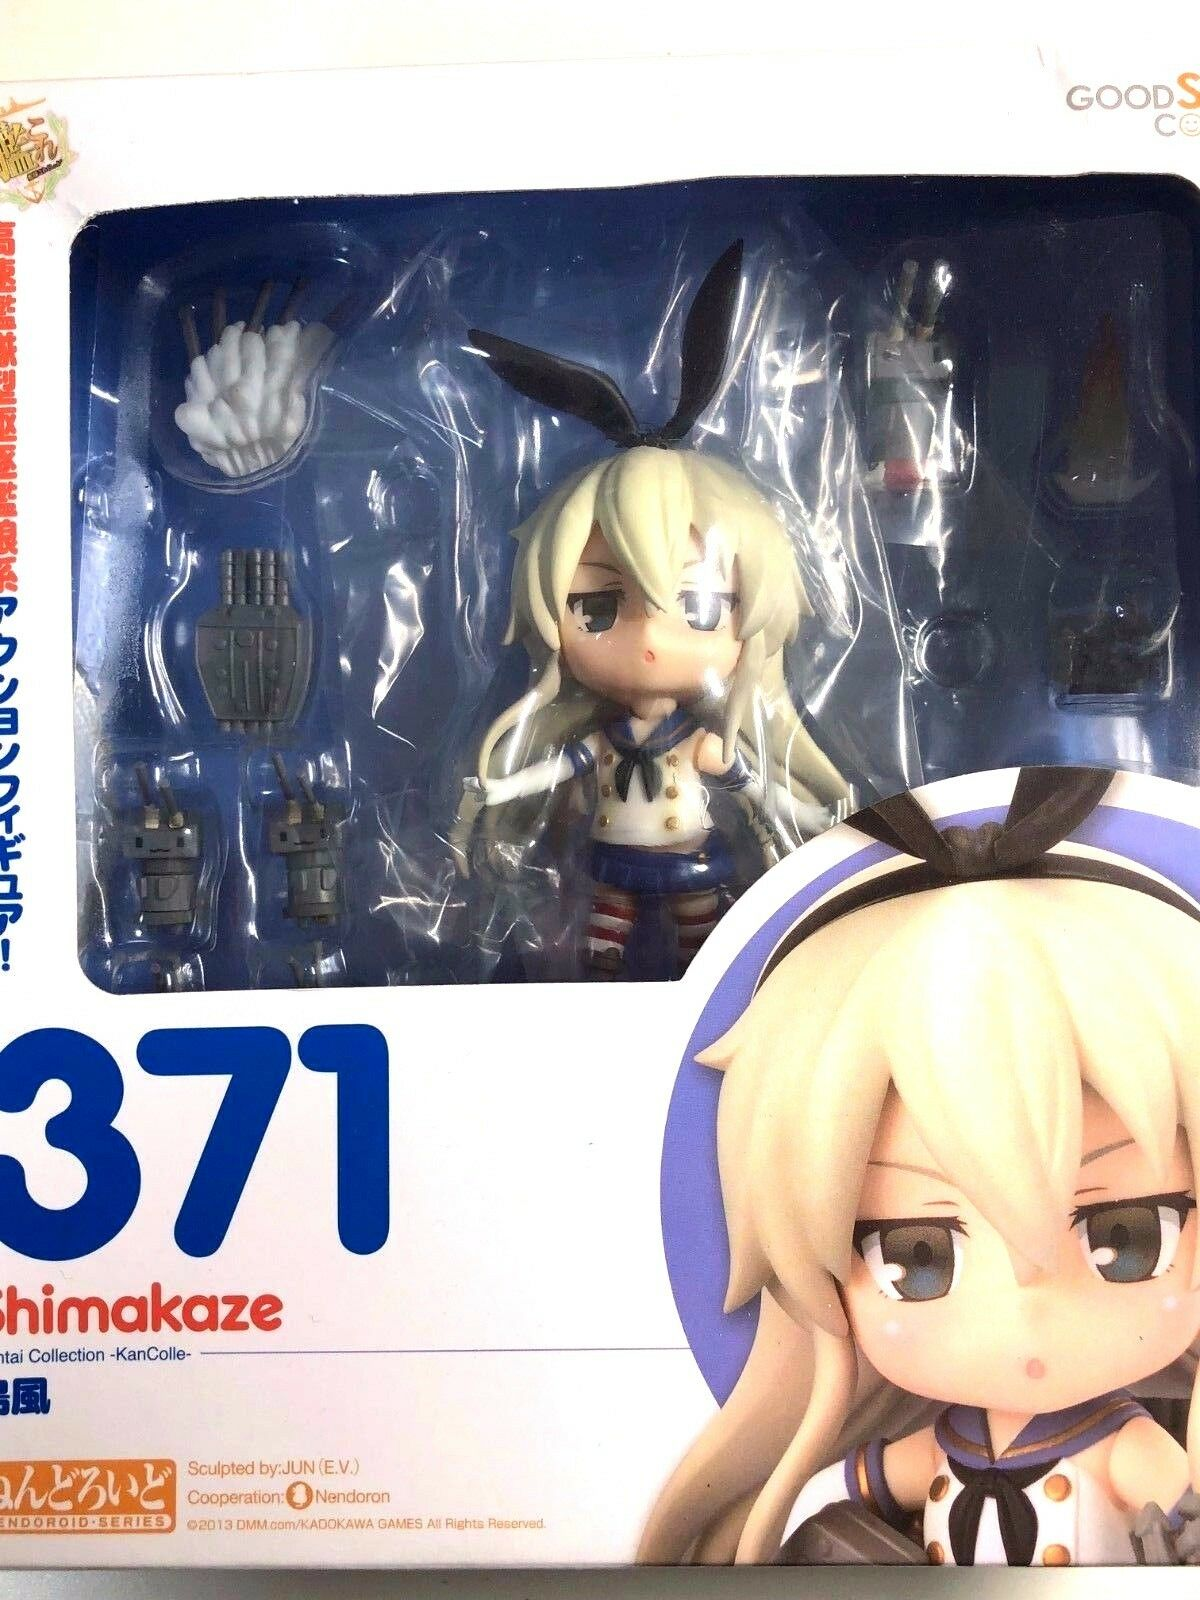 Free Shipping from Japan Authentic Nendoroid Shimakaze KantaiCollection Kancolle